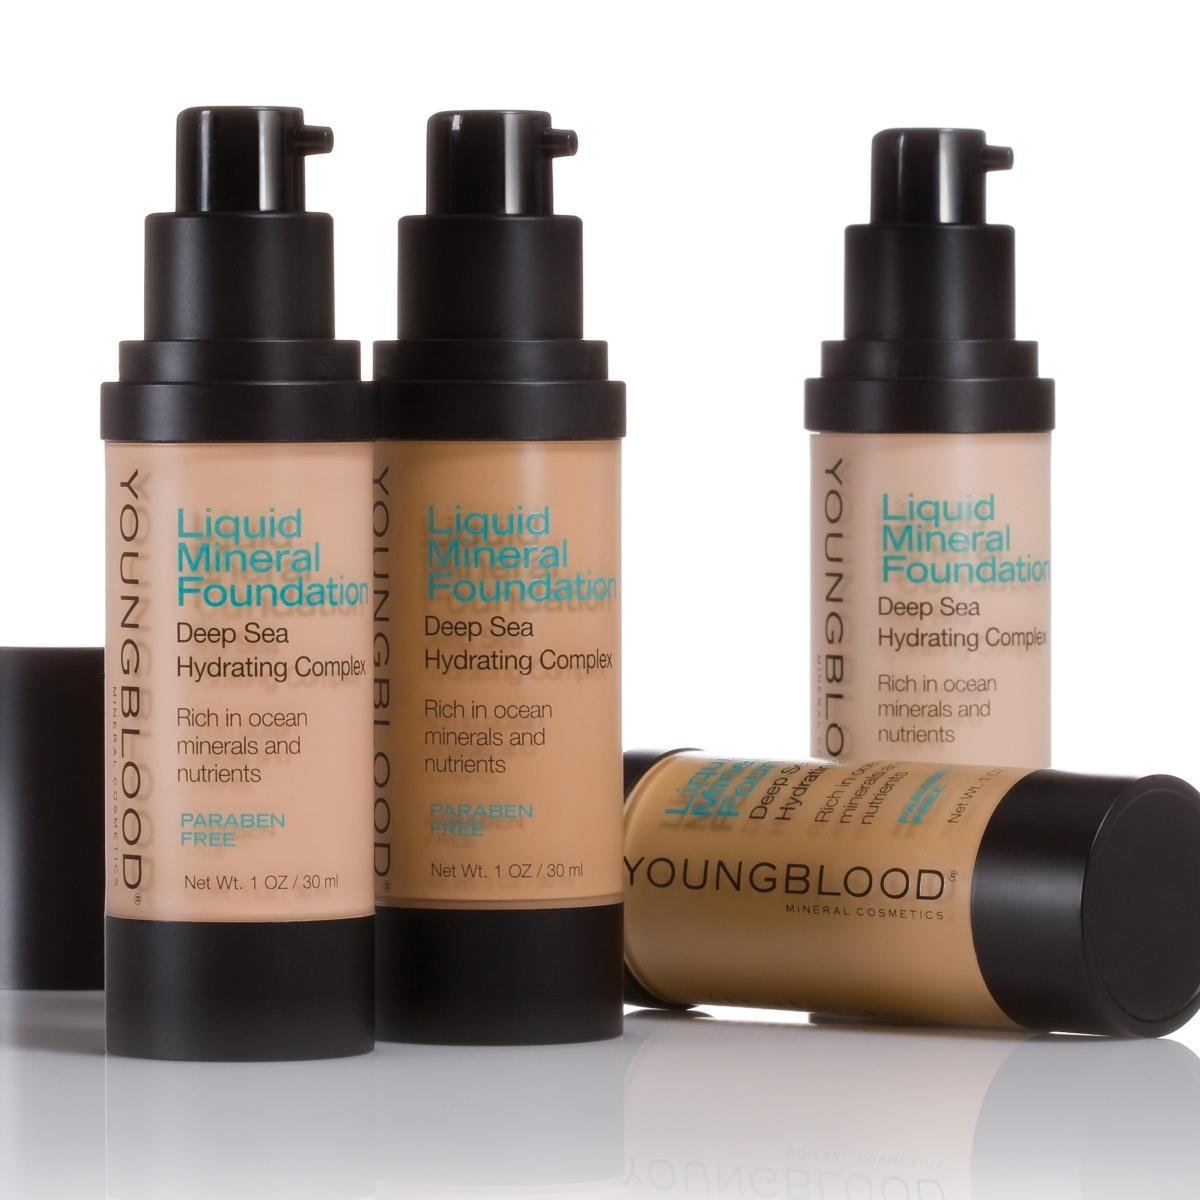 Mineral foundation reviews